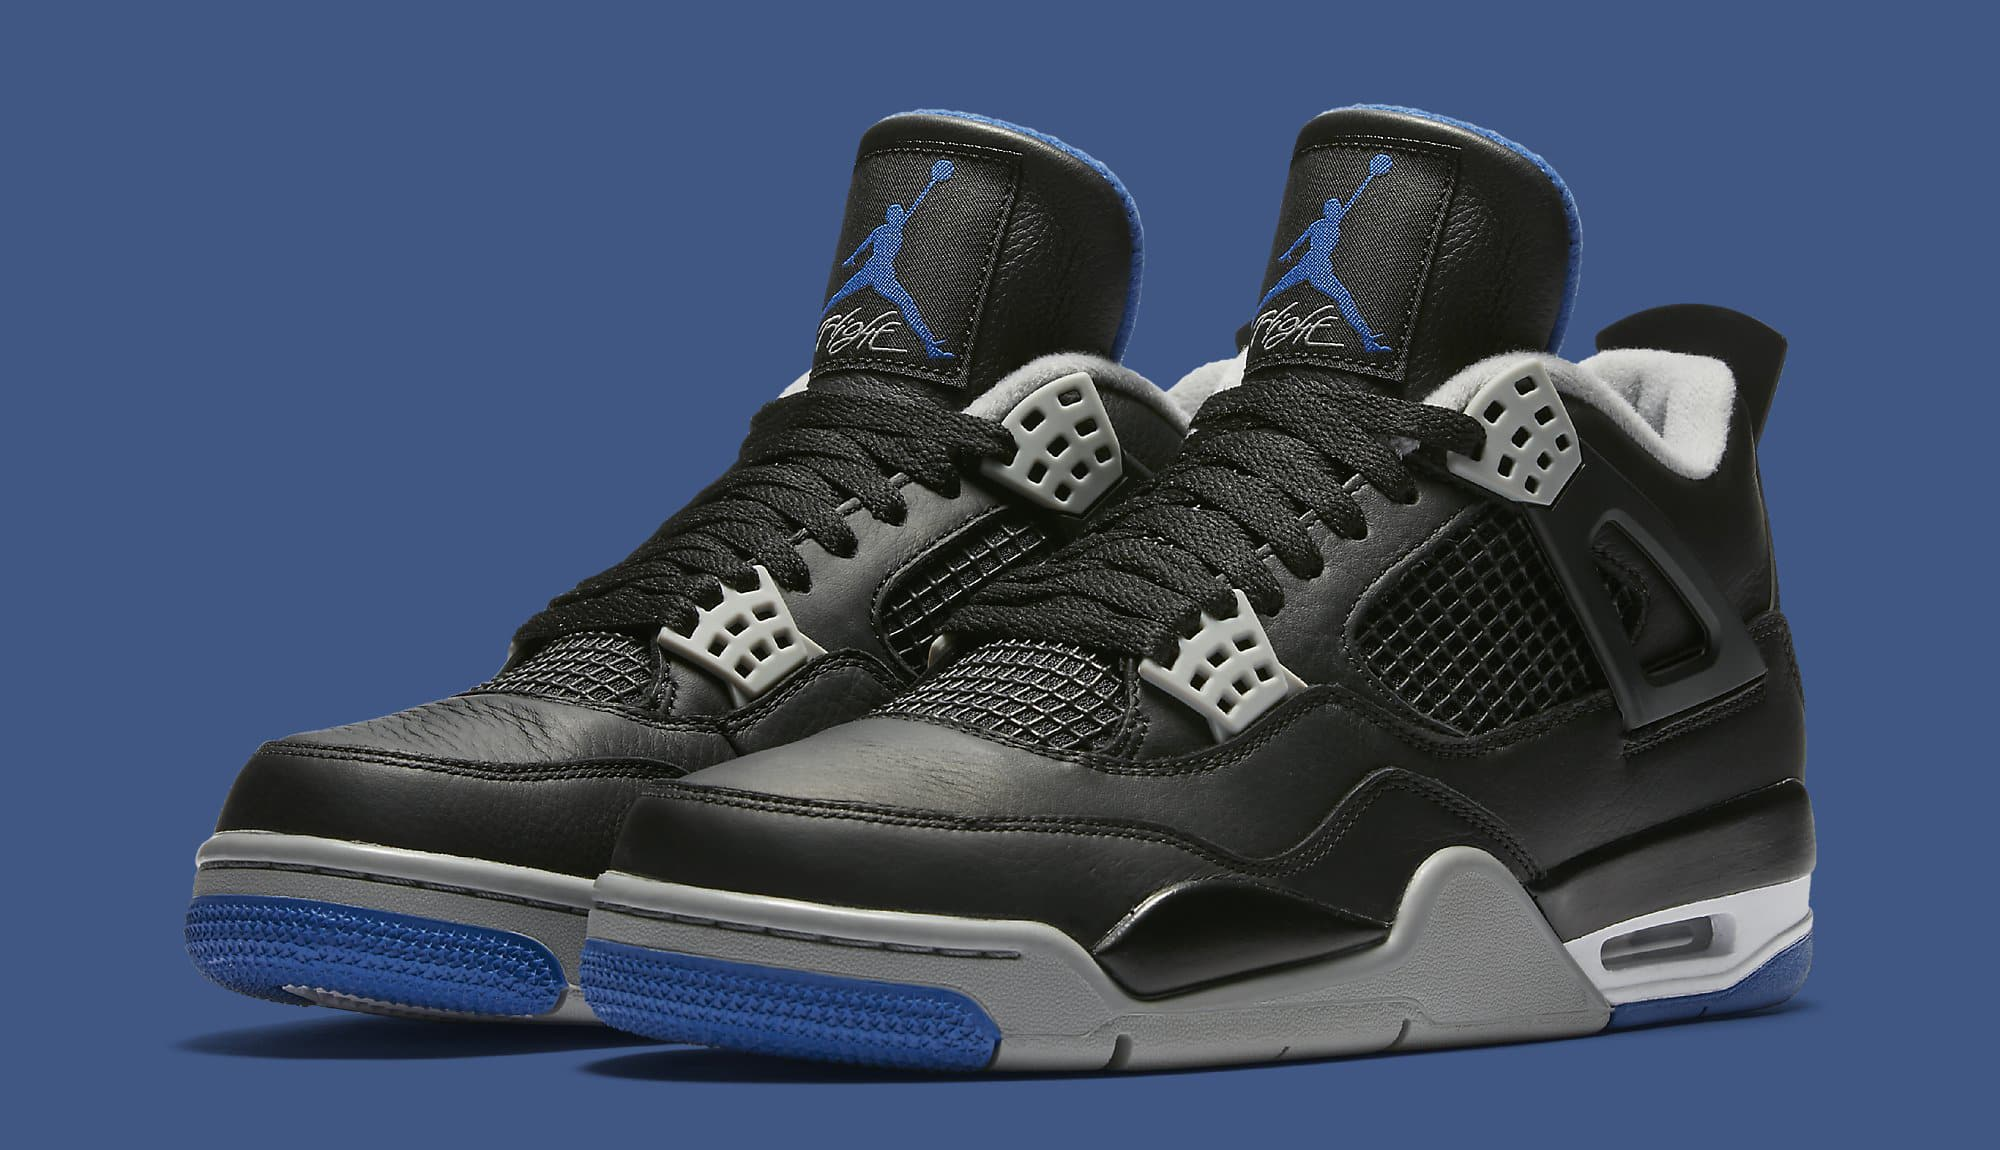 Air Jordan 4 Black Royal Release Date - Air 23 - Air Jordan Release ... 3fca494d9167